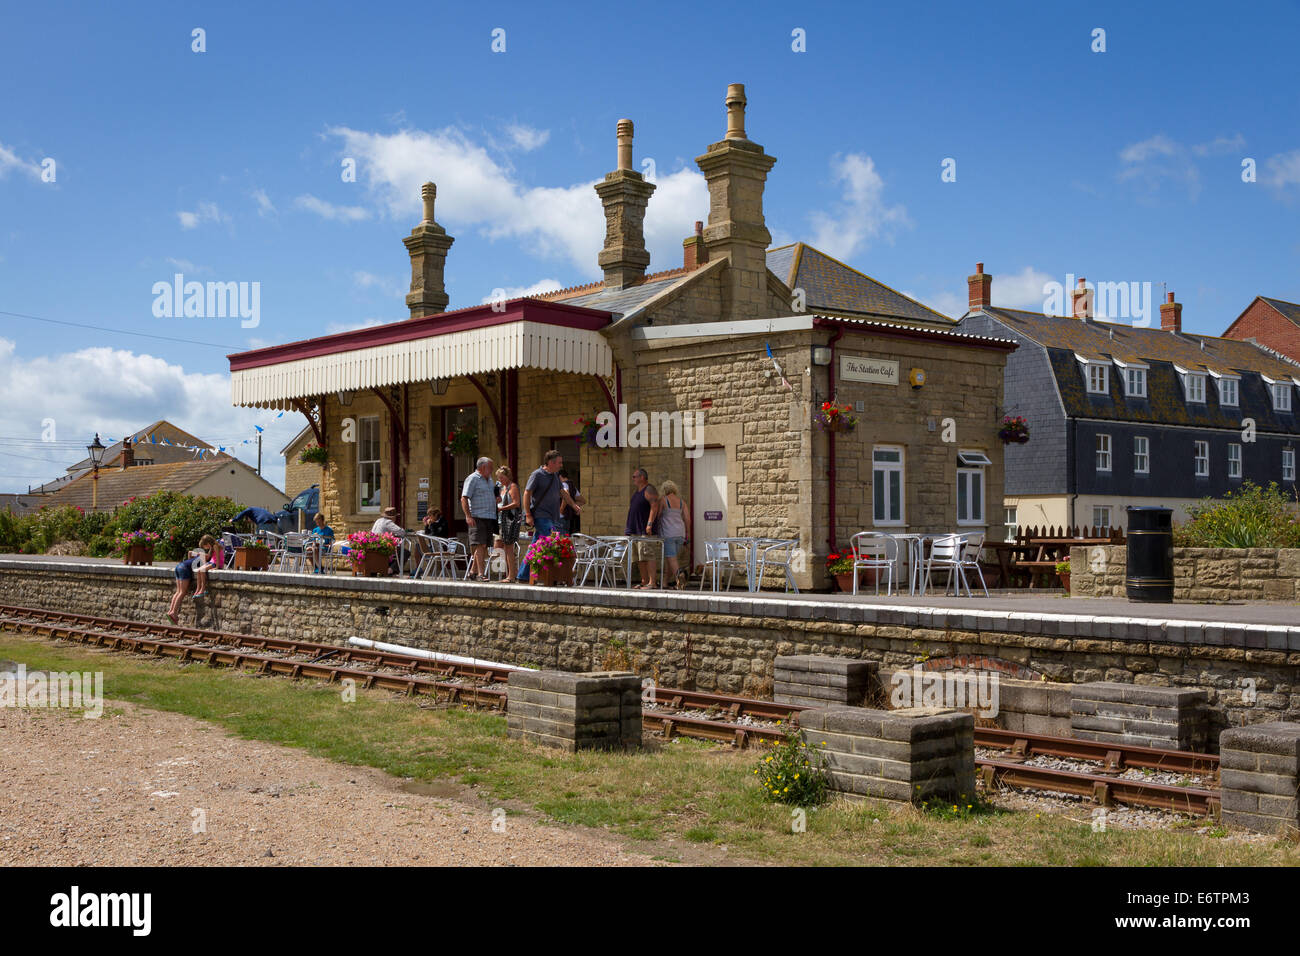 The Station Cafe in the converted old railway station at West Bay, Bridport, Dorset - Stock Image